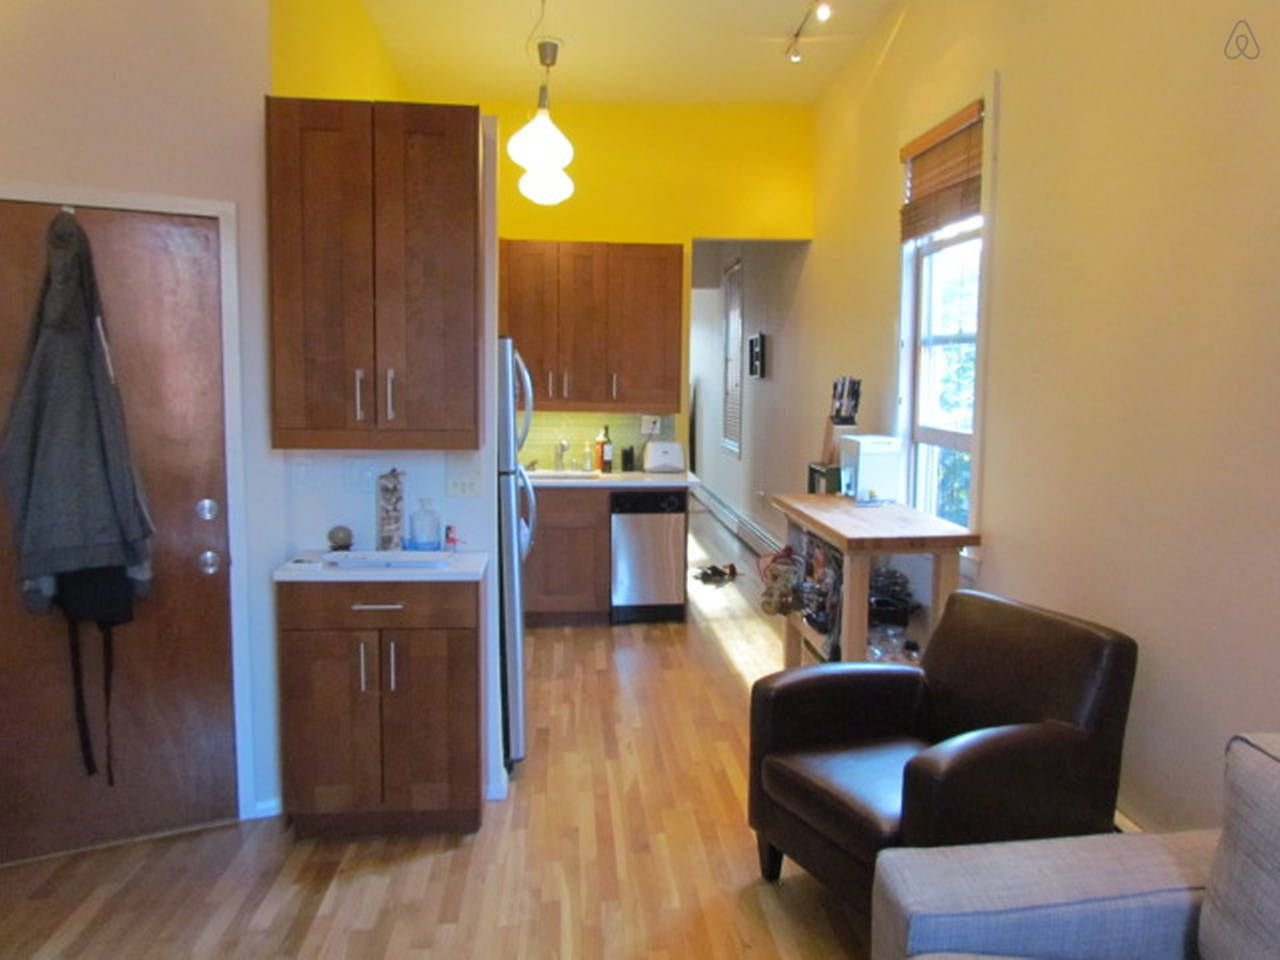 1 Bed Room Apt With Deck Yard In Jersey City Vacation Home Condo Rental Home